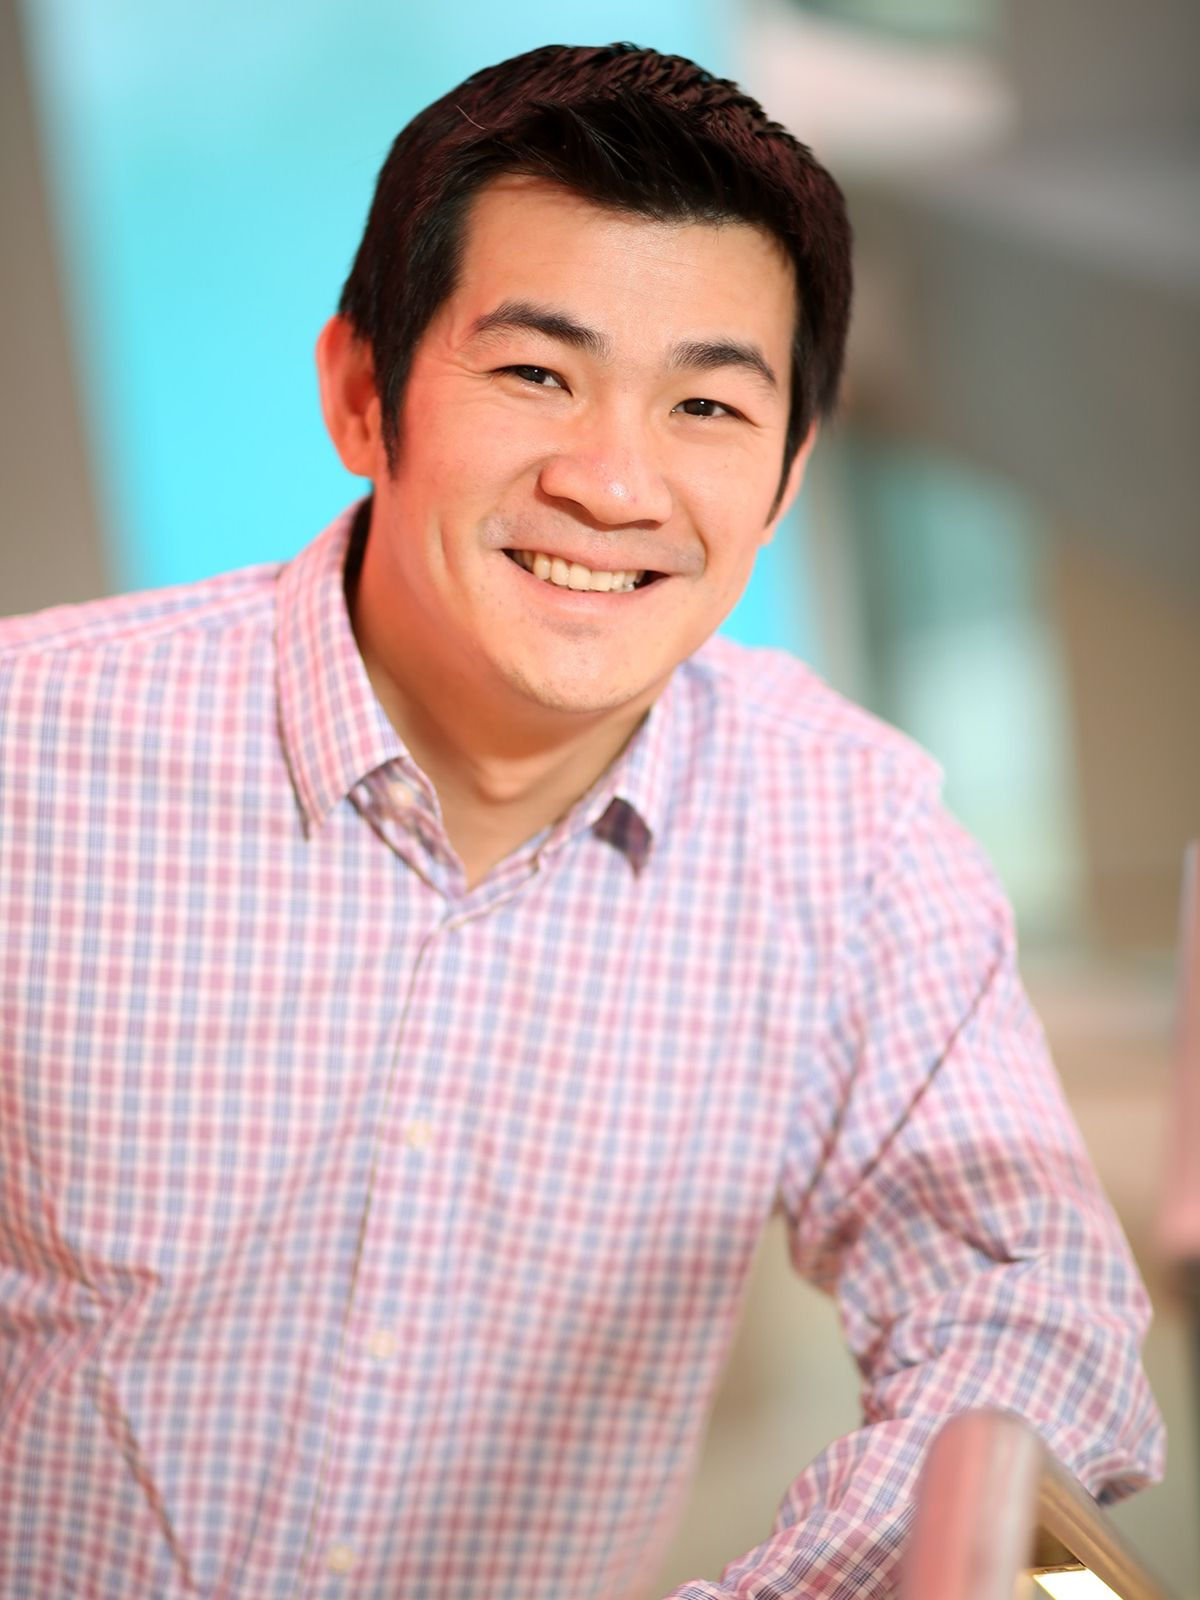 Symend appoints PehKeong Teh as Chief Product Officer, Symend